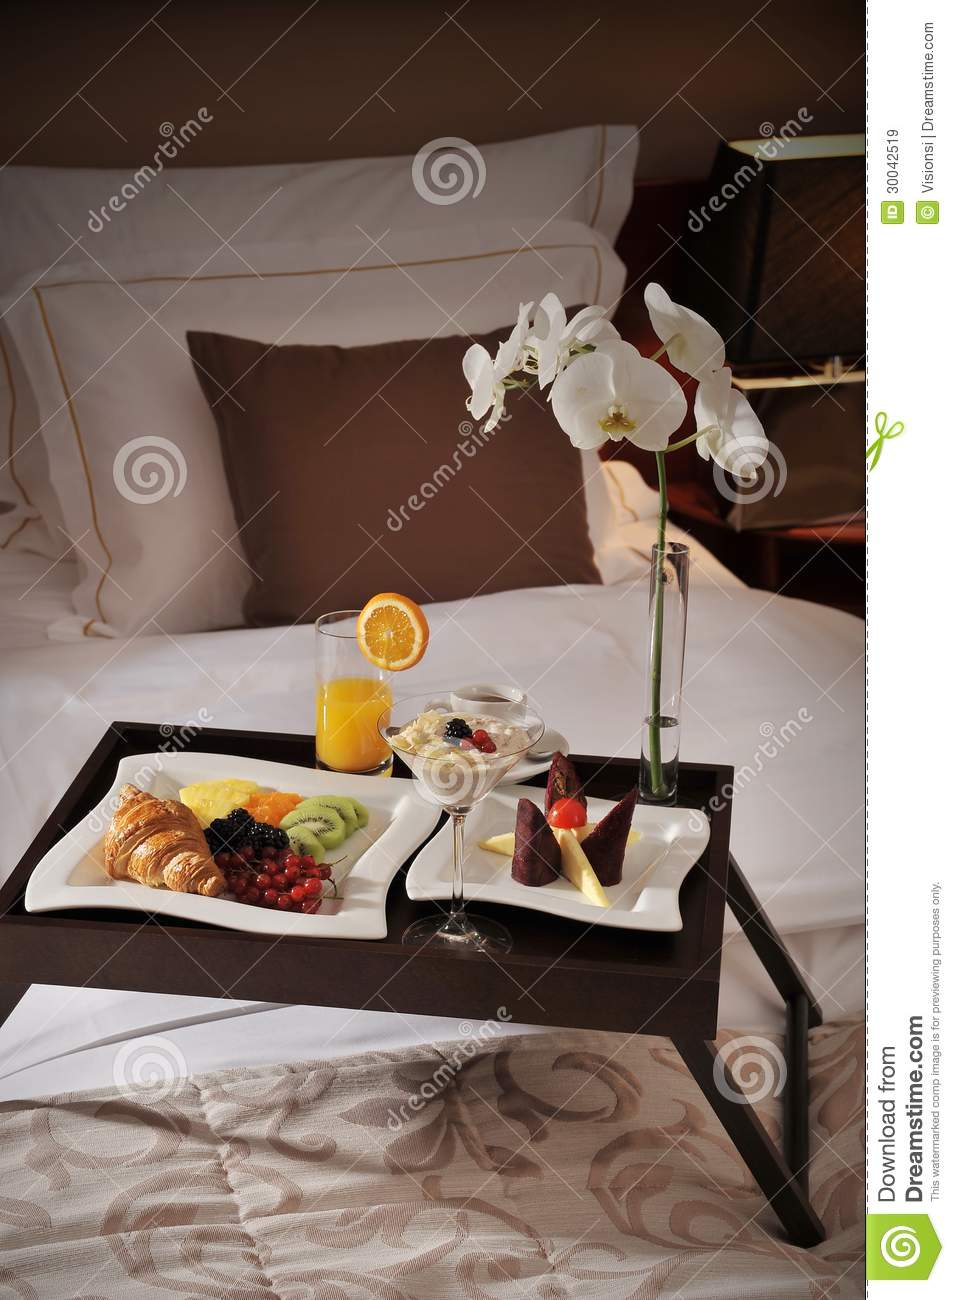 Breakfast In Bed At A Hotel Room Royalty Free Stock Images ...